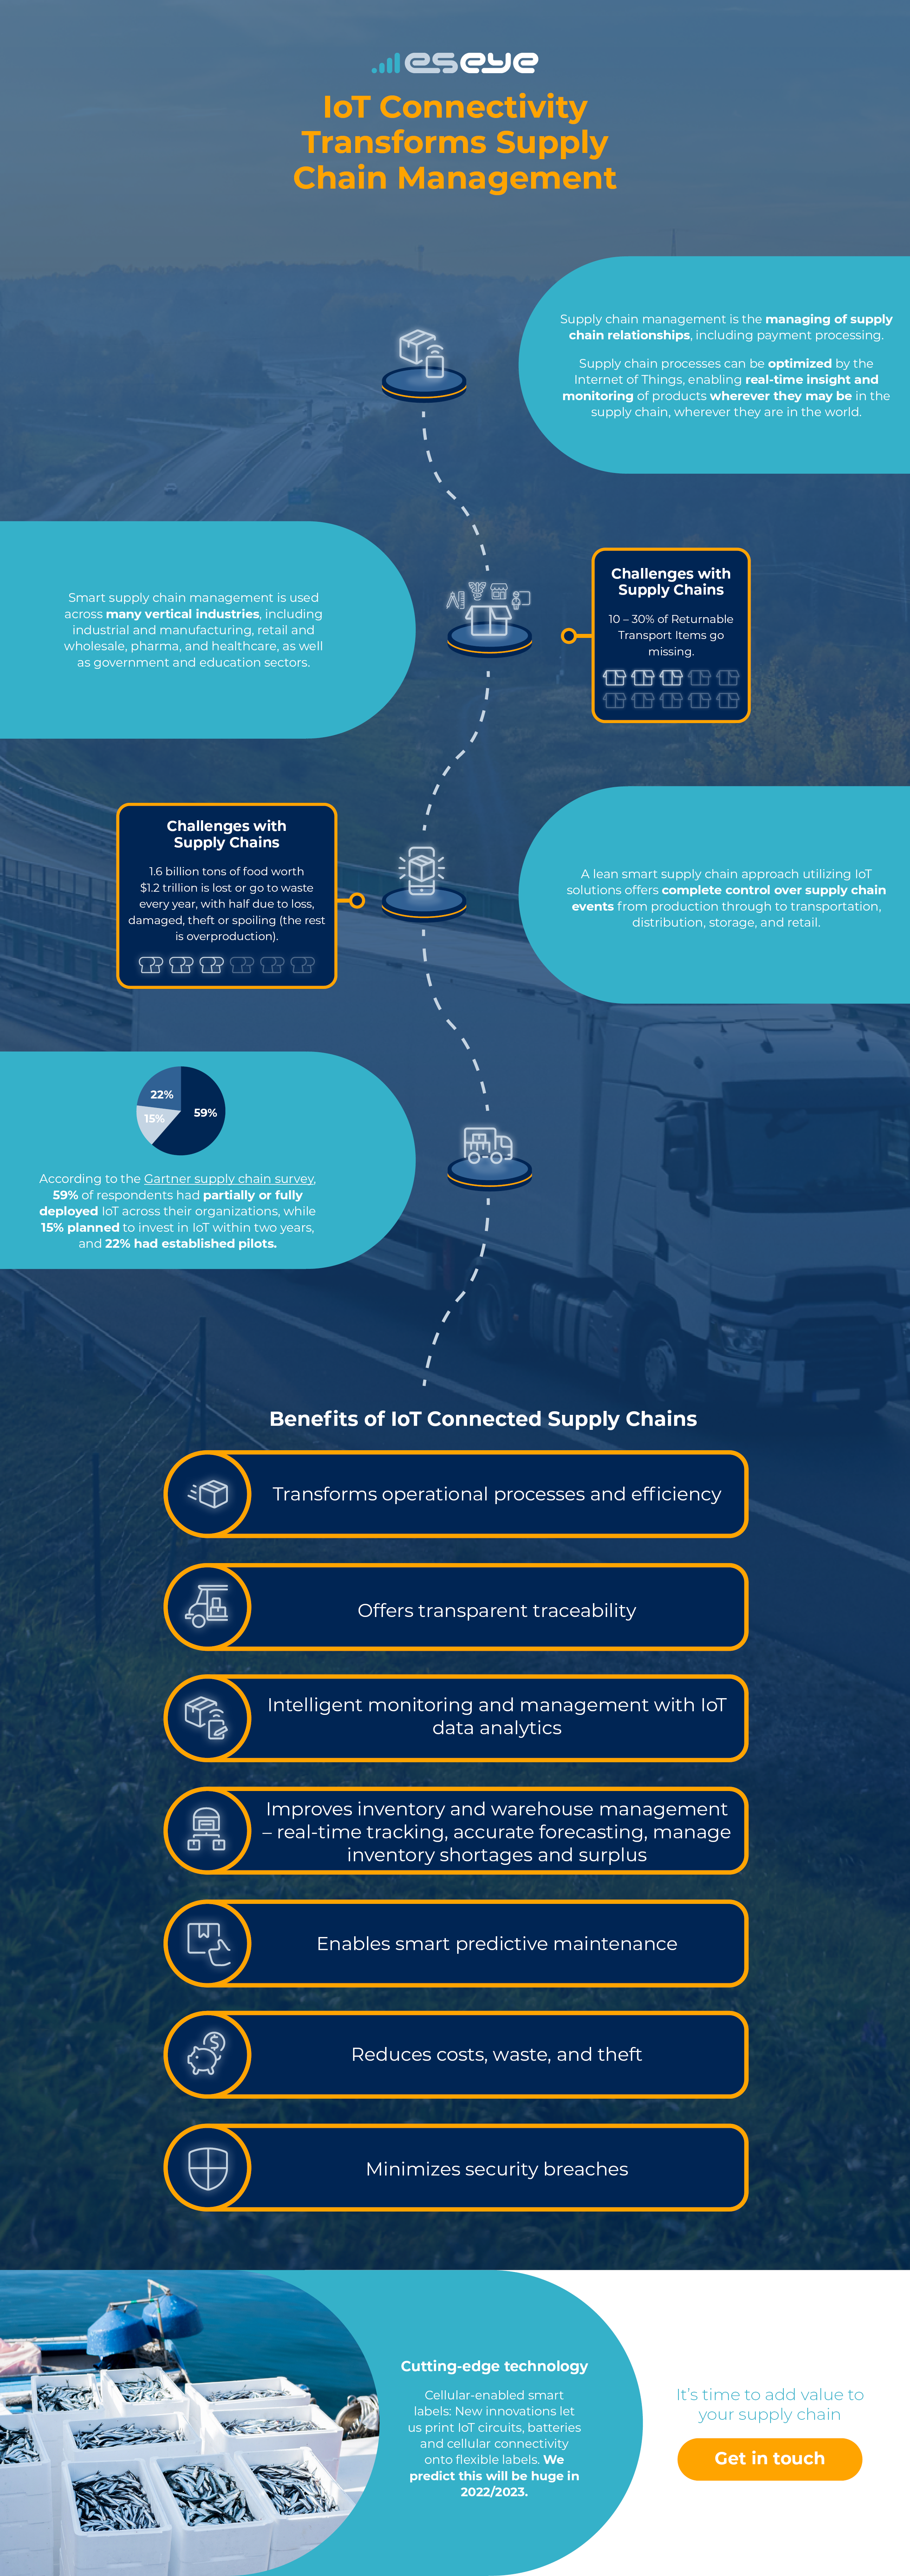 How IoT Connectivity Transforms Supply Chain Management